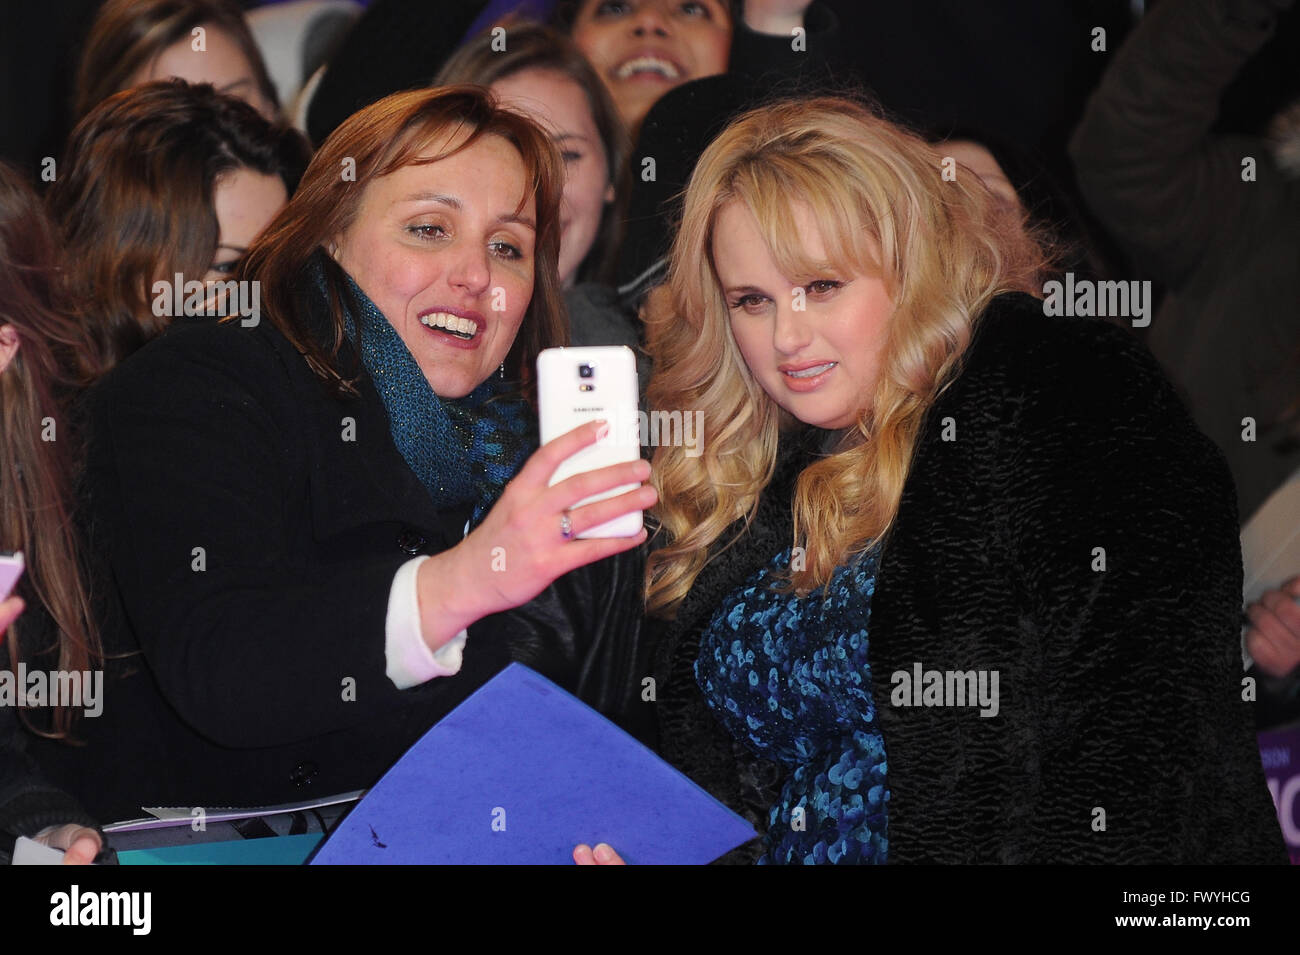 Rebel Wilson Attends The Uk Premiere Of How To Be Single At Vue West End In  London 9th February 2016 © Paul Treadway